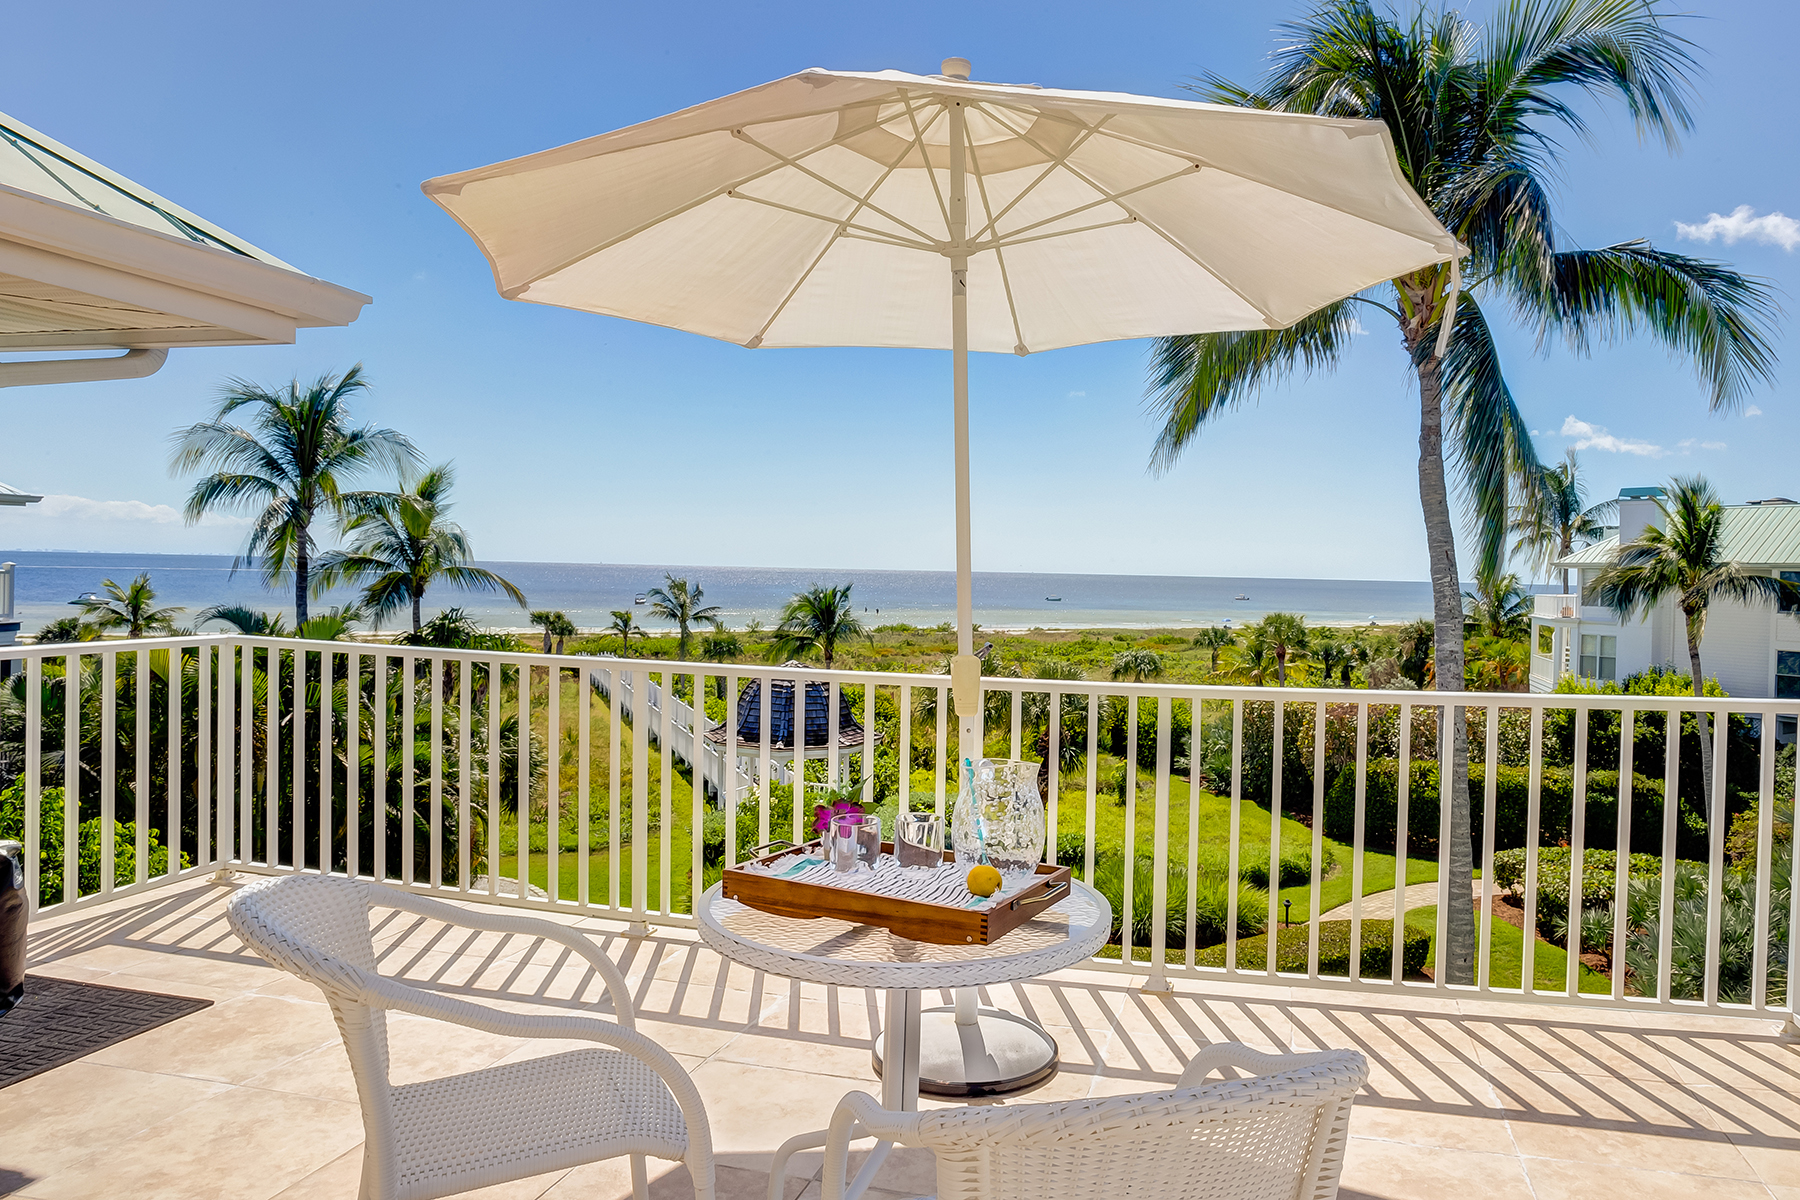 Maison unifamiliale pour l Vente à SANIBEL 407 Bella Vista Way E Sanibel, Florida, 33957 États-Unis